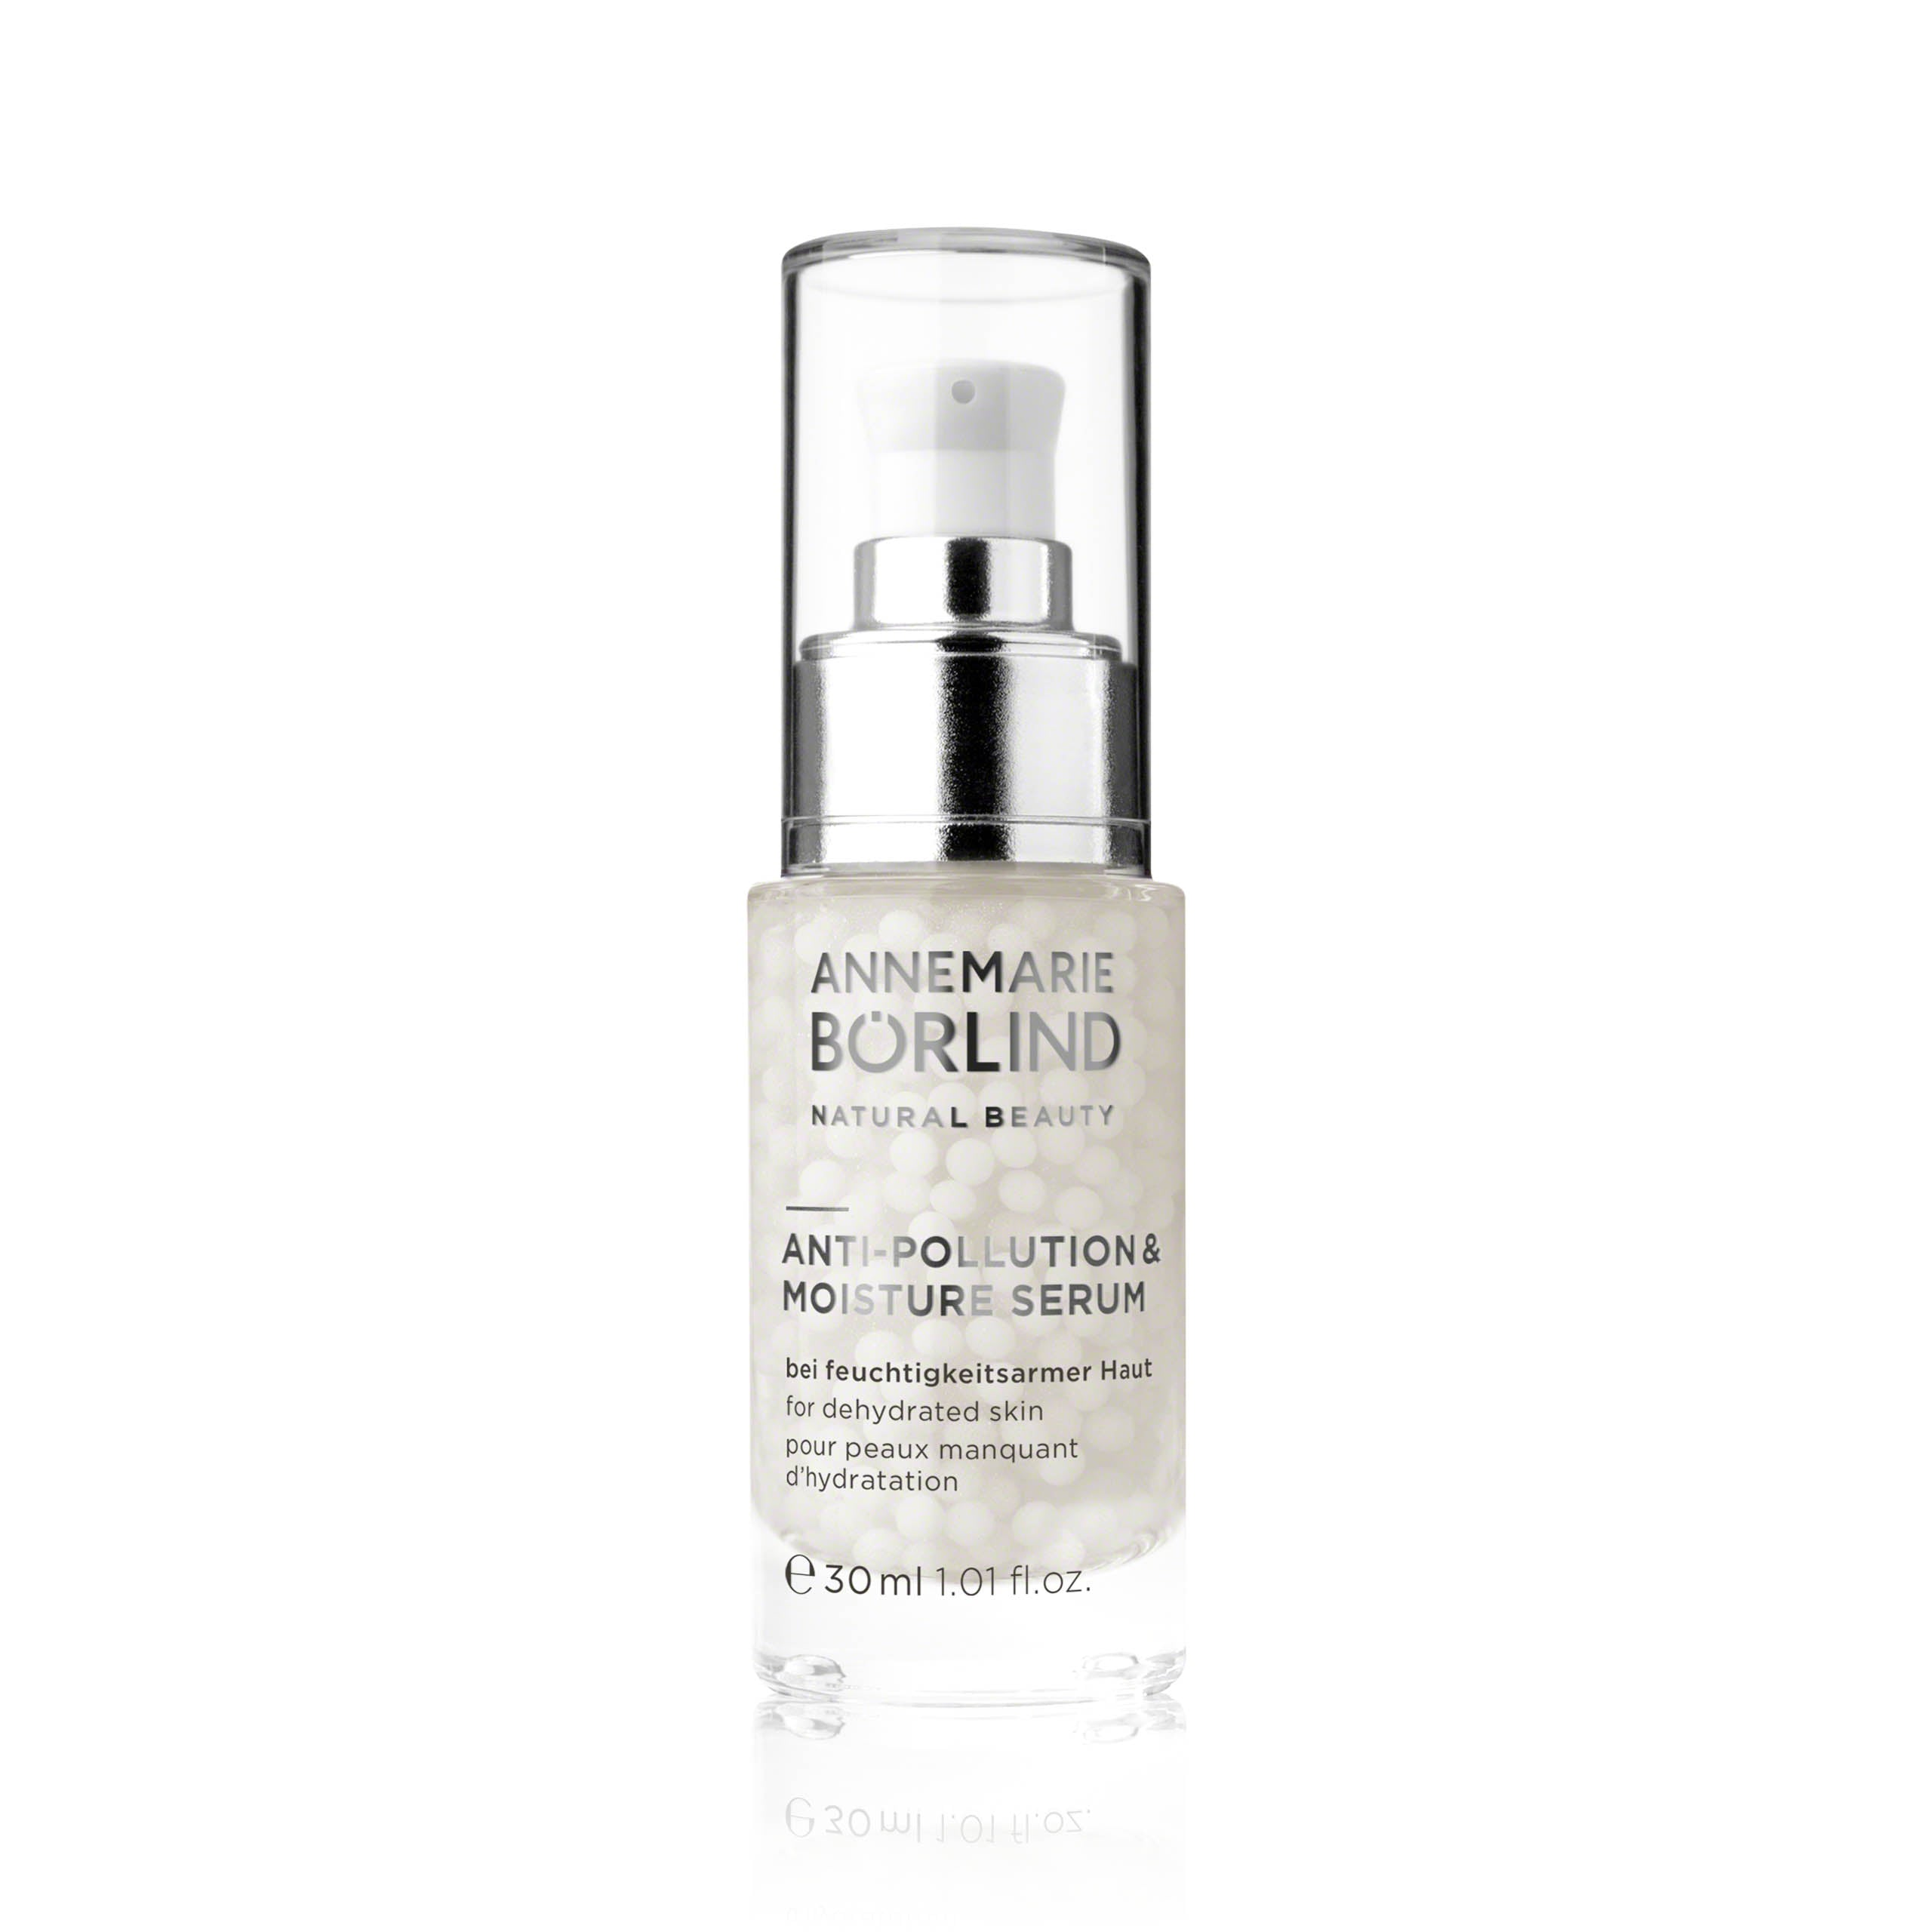 Beauty Pearls Anti-Pollution & Moisture Serum Annemarie Borlind